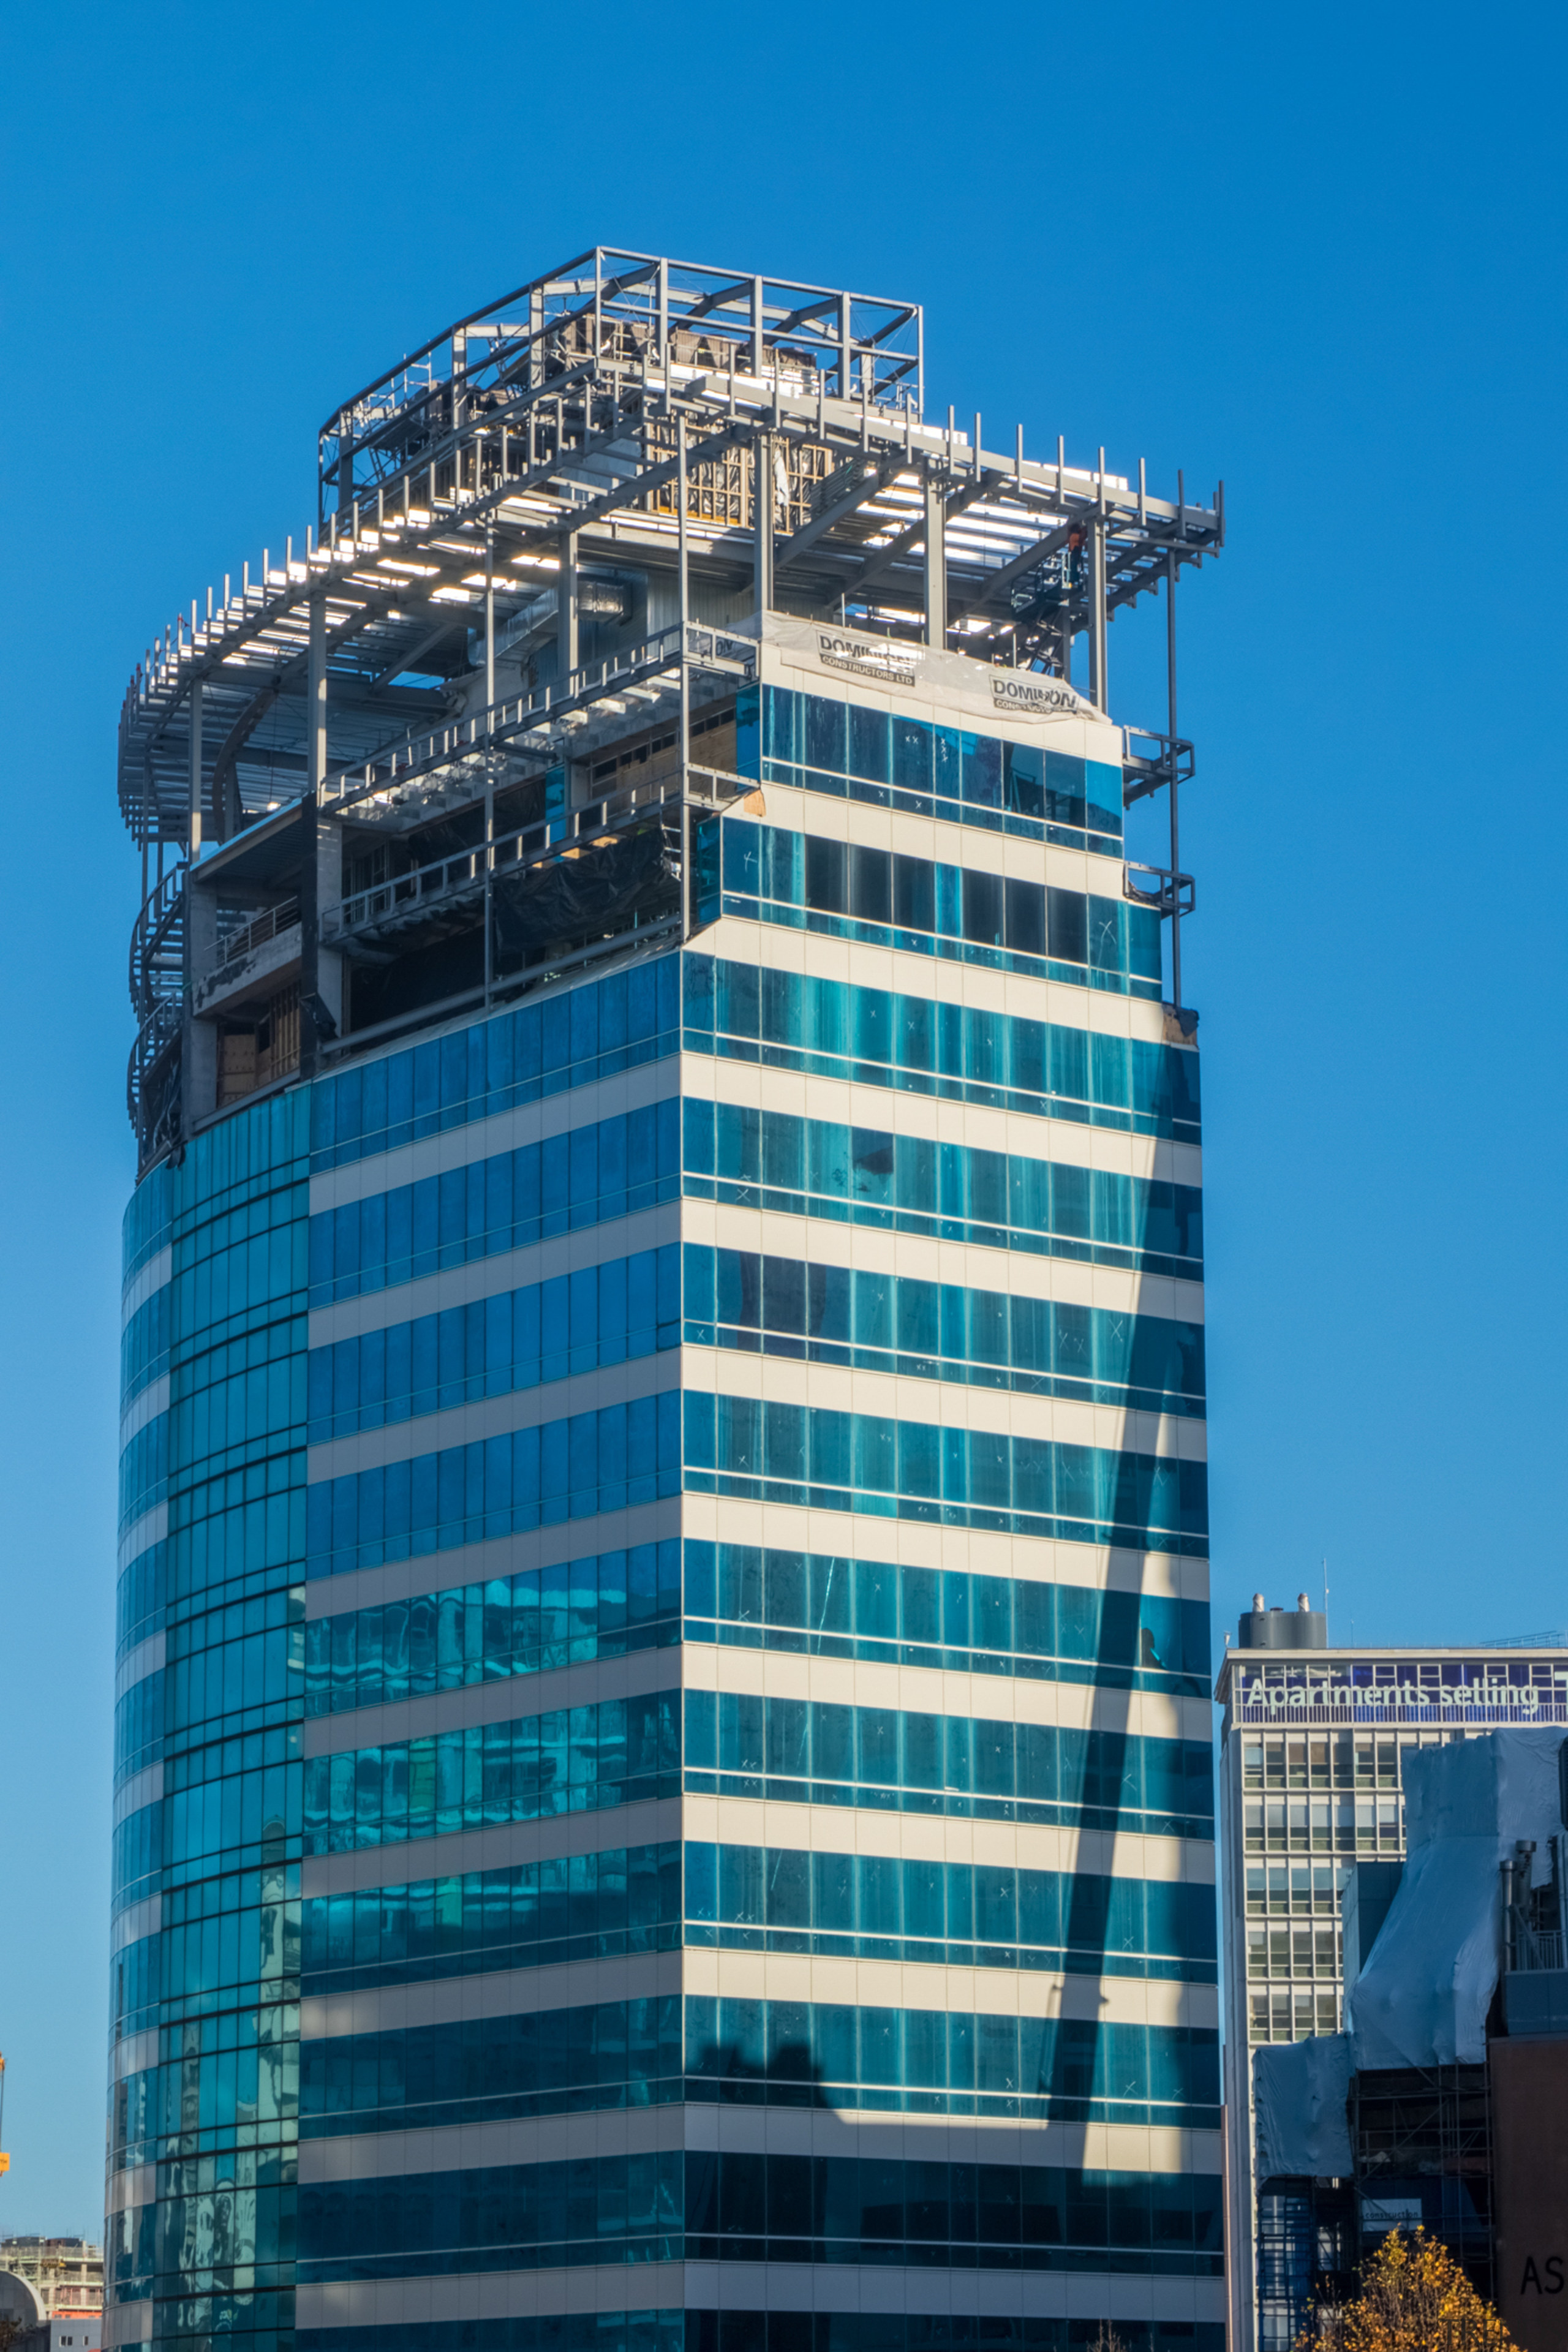 Dominion Constructors undertook the conversion of office block Hotel, architecture, building, city, Dominion Constructors, Russell Property Group, Four Points Sheraton